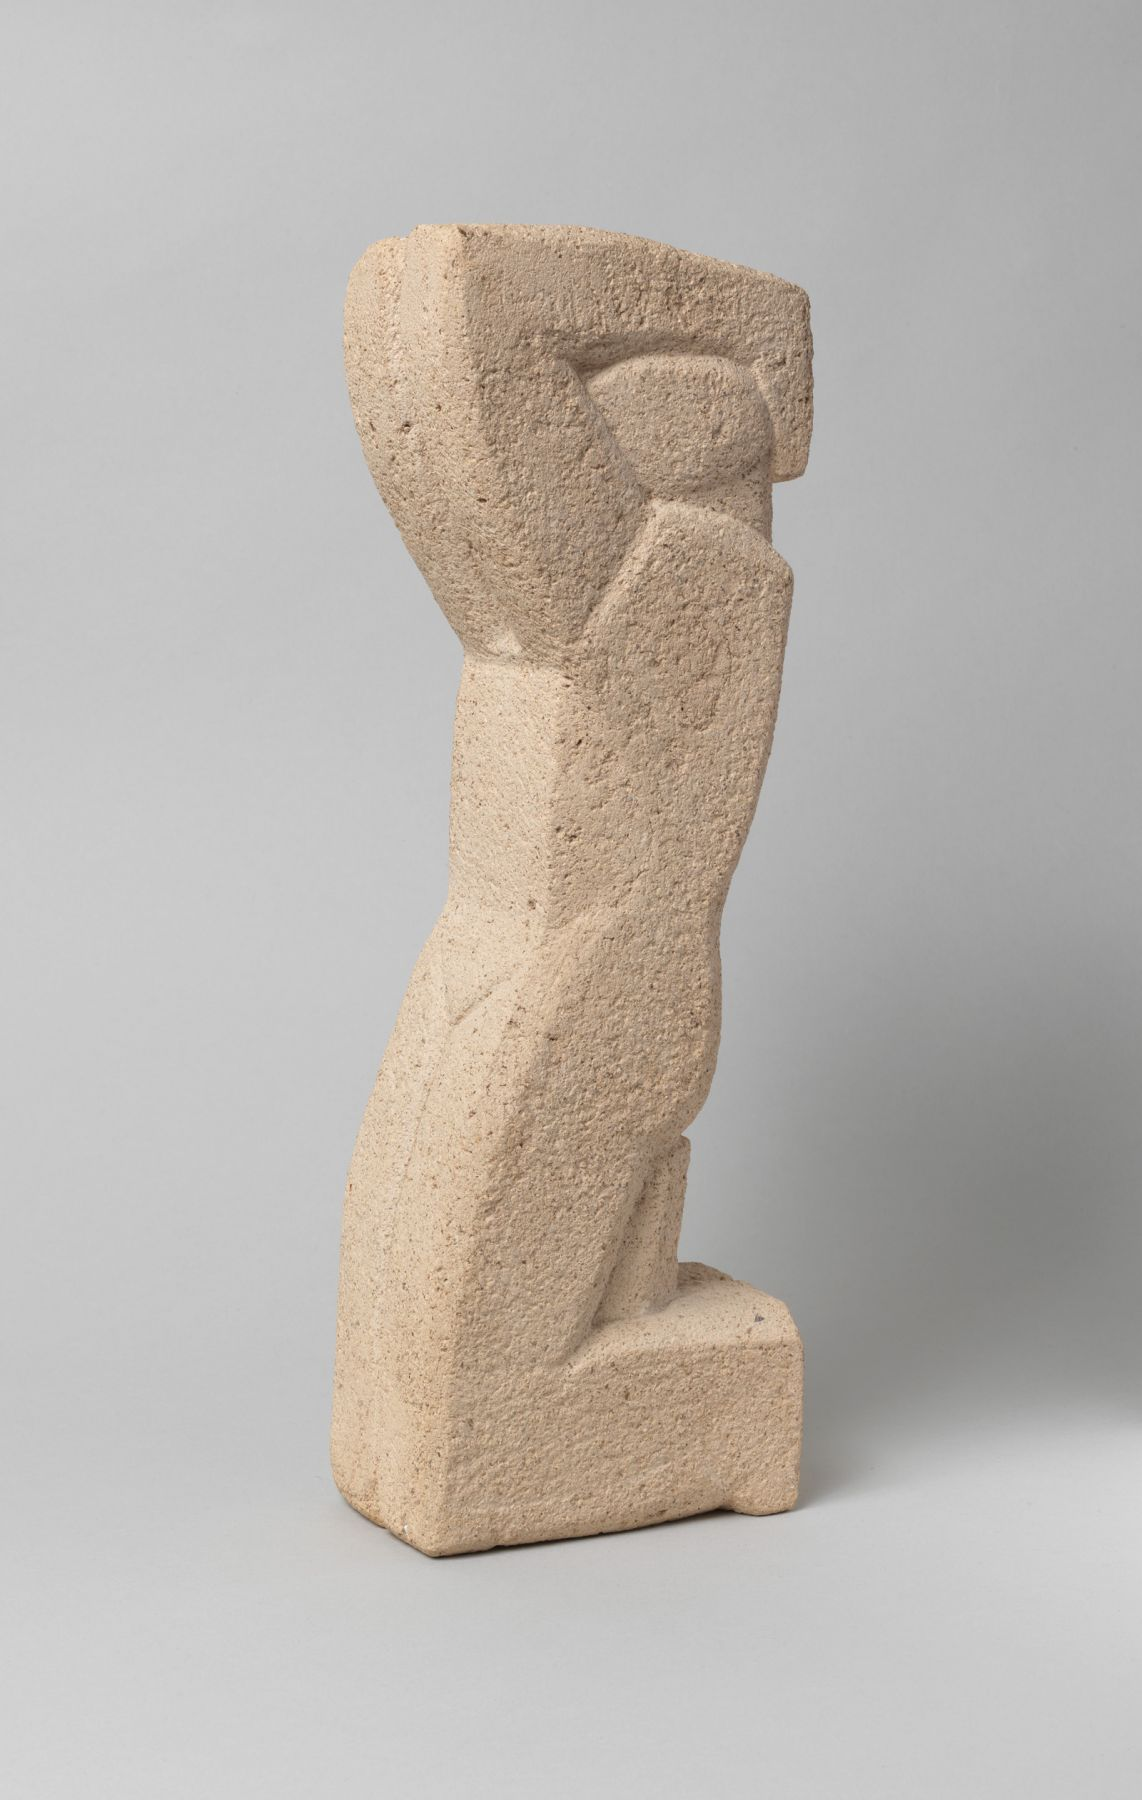 John Storrs, Kneeling Figure with Arms Raised, 1947, cast stone, 13 3/8 h x 4 3/8 w x 2 3/4 d inches, unique cast